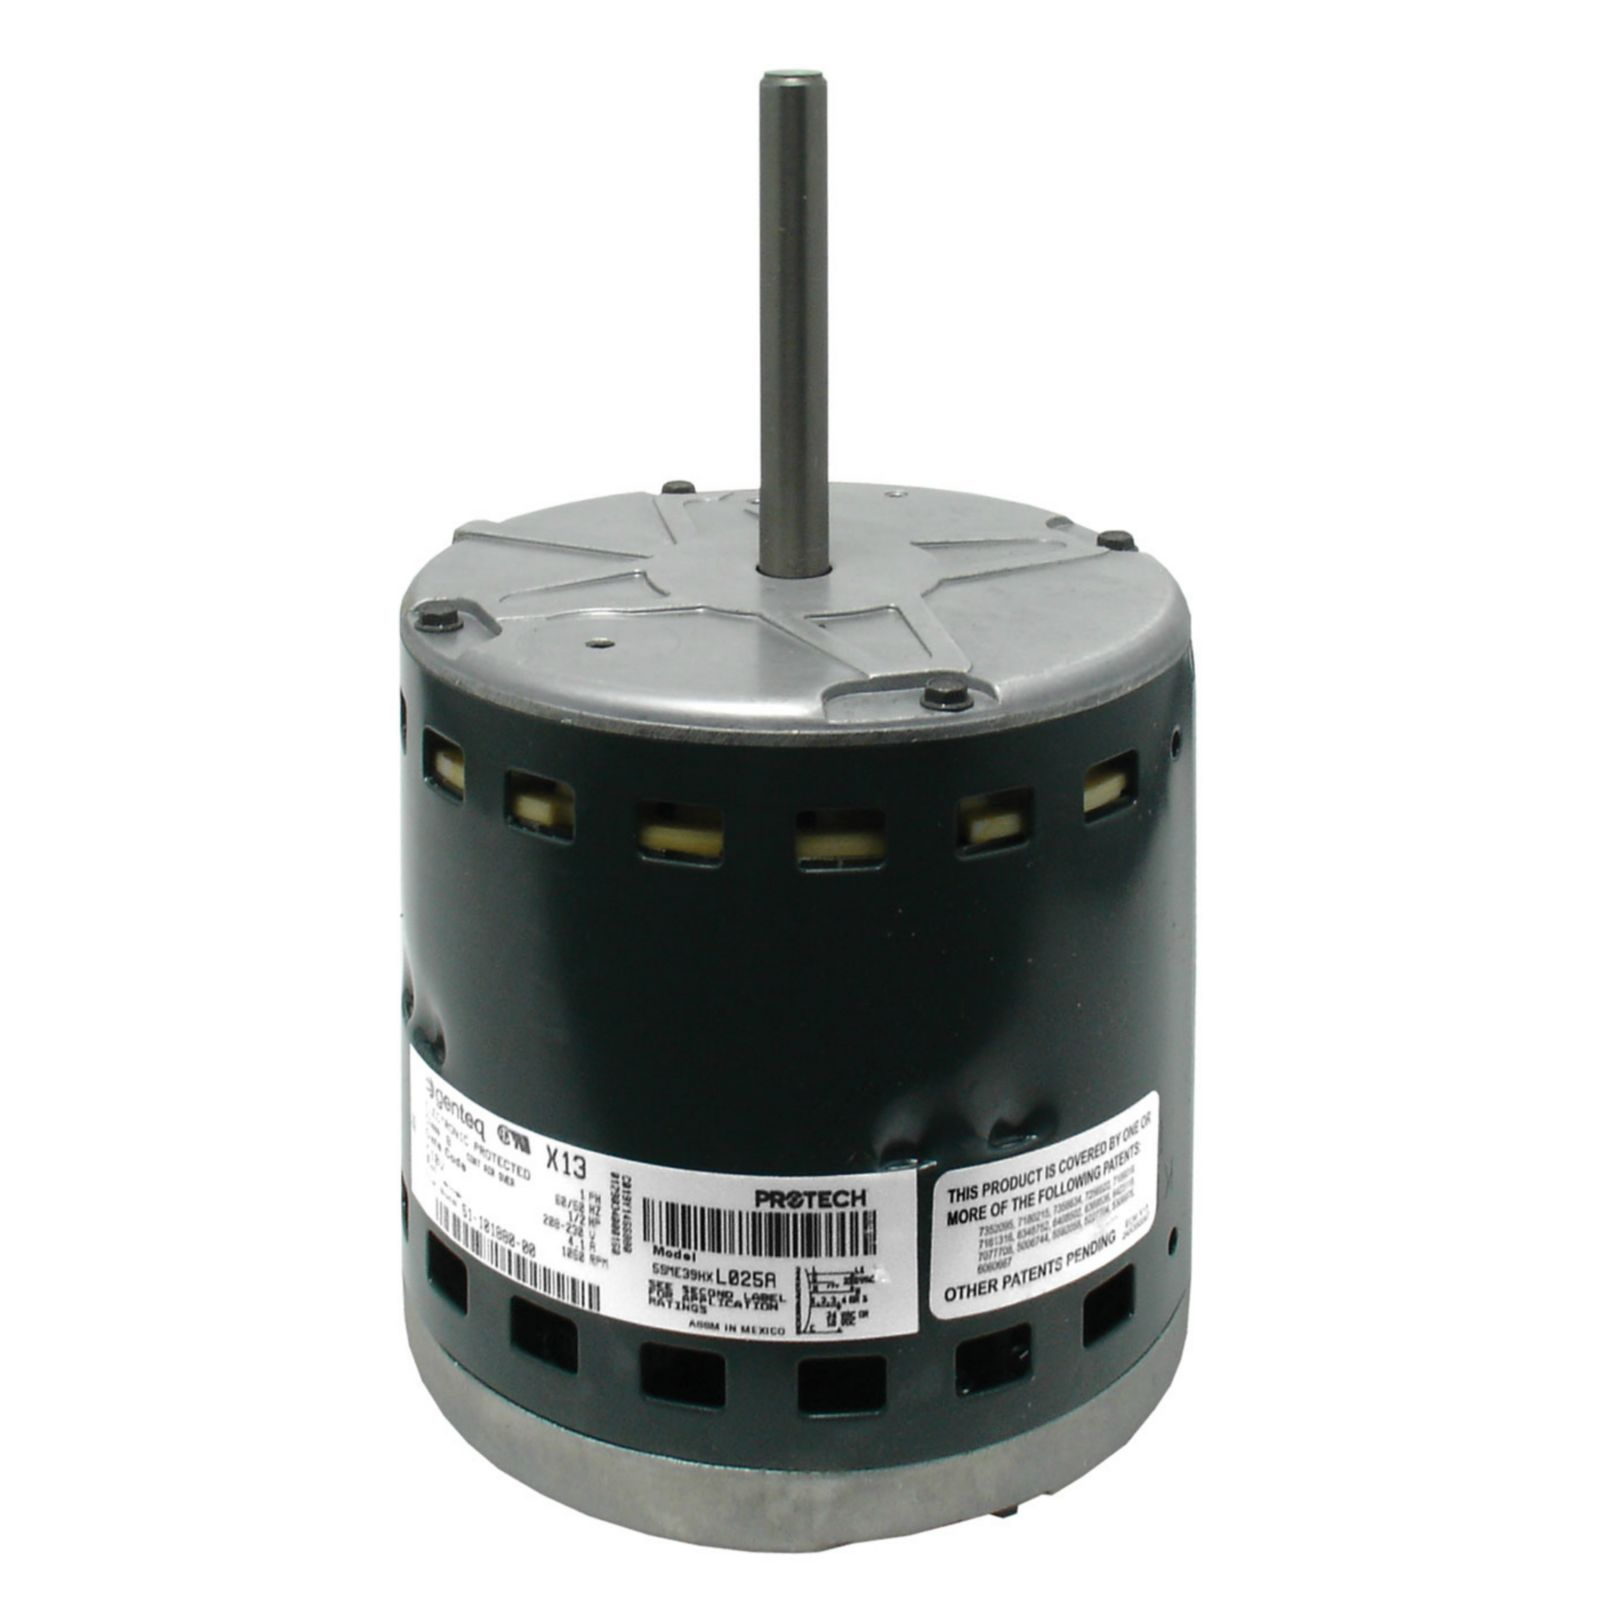 Genteq 51 101880 00 motor and module x 13 230v 12 hp view full size in new tab asfbconference2016 Images